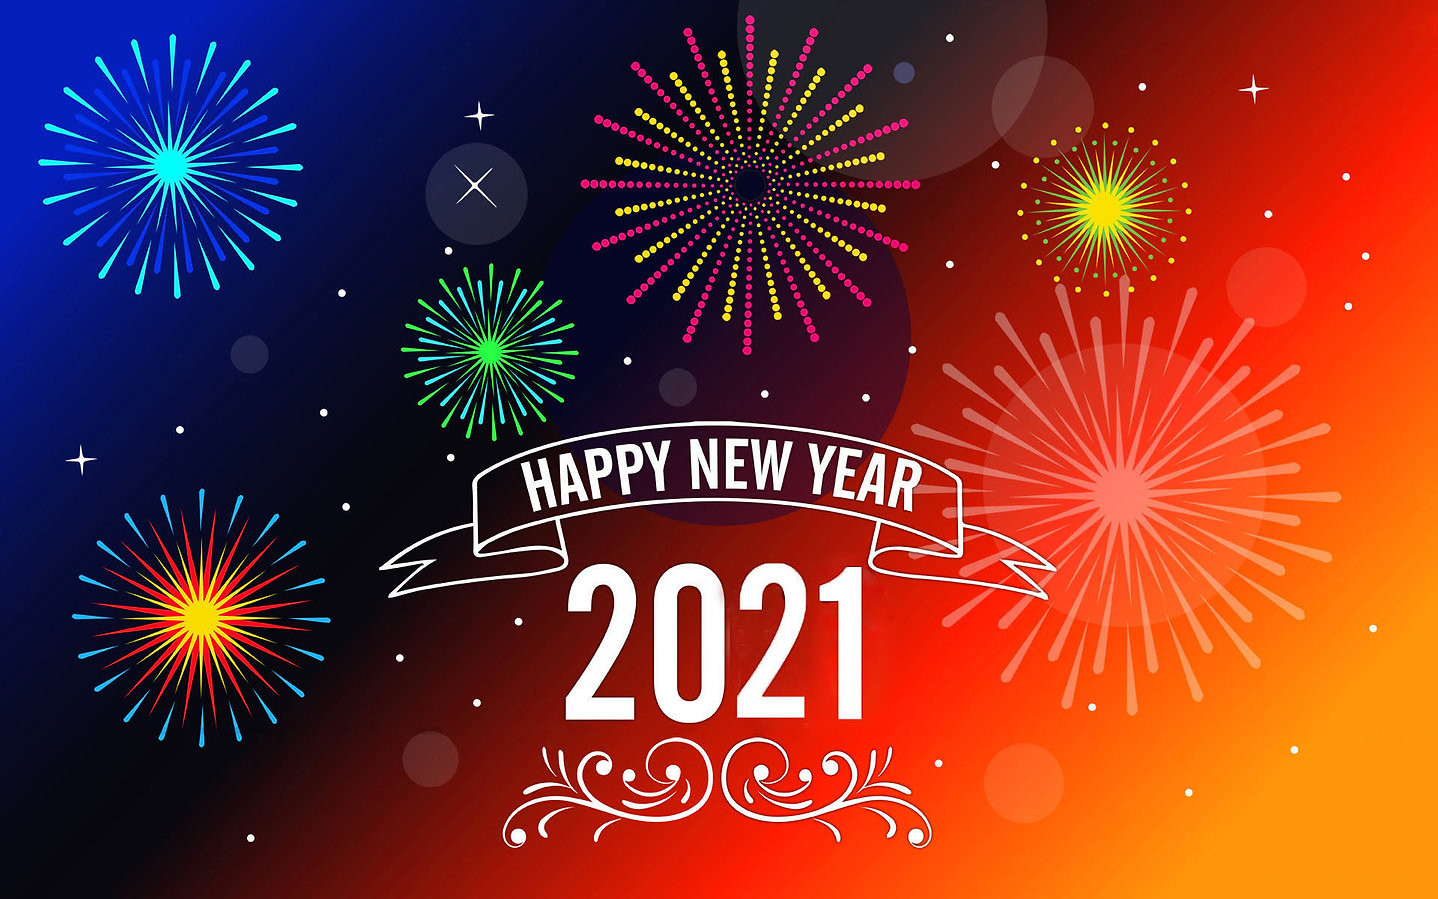 Happy-New-Year-2021-messages-Wallpaper-H